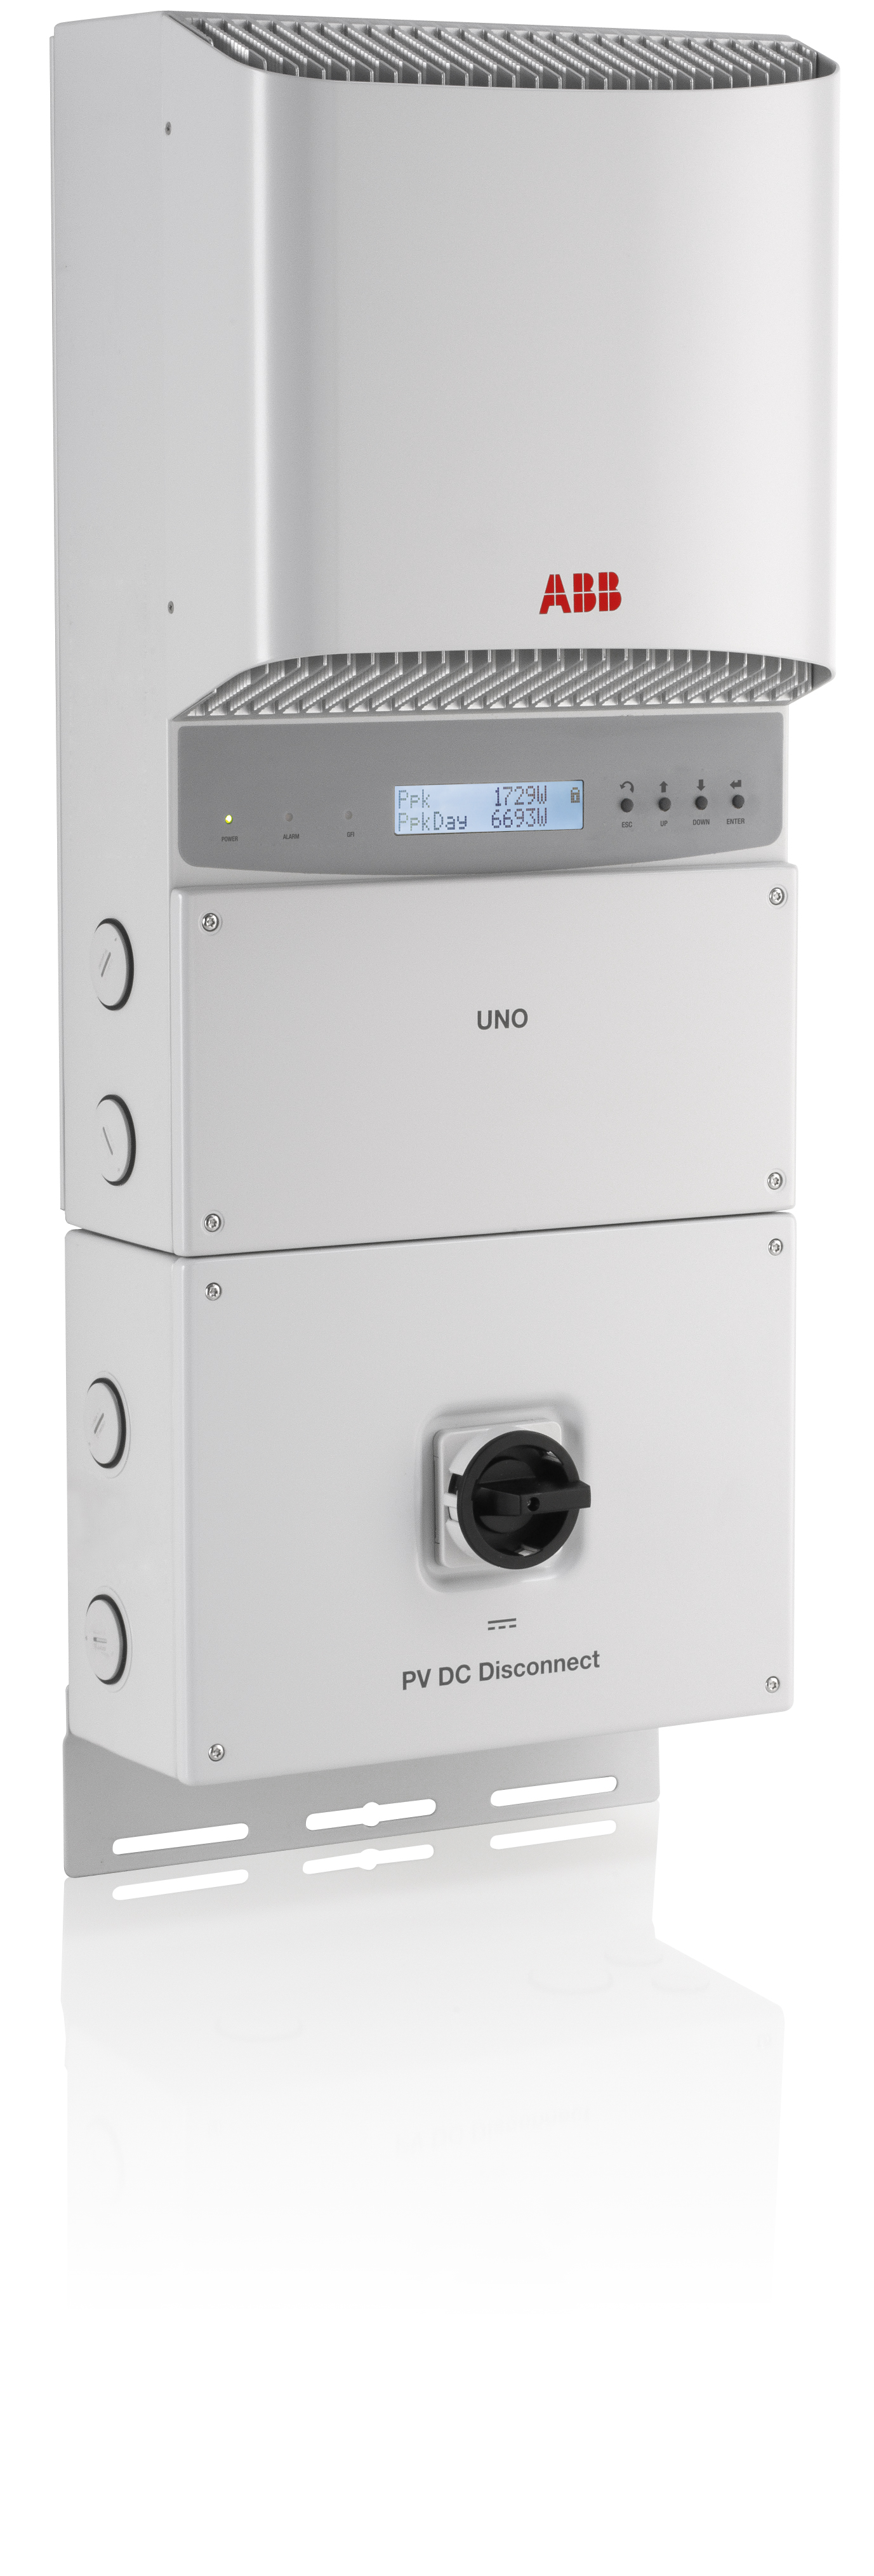 ABB, PVI-3.8-OUTD-S-US-A, NON-ISOLATED STRING INVERTER, 3800W, 208/240/277 VAC, DUAL MPPT WITH AFCI